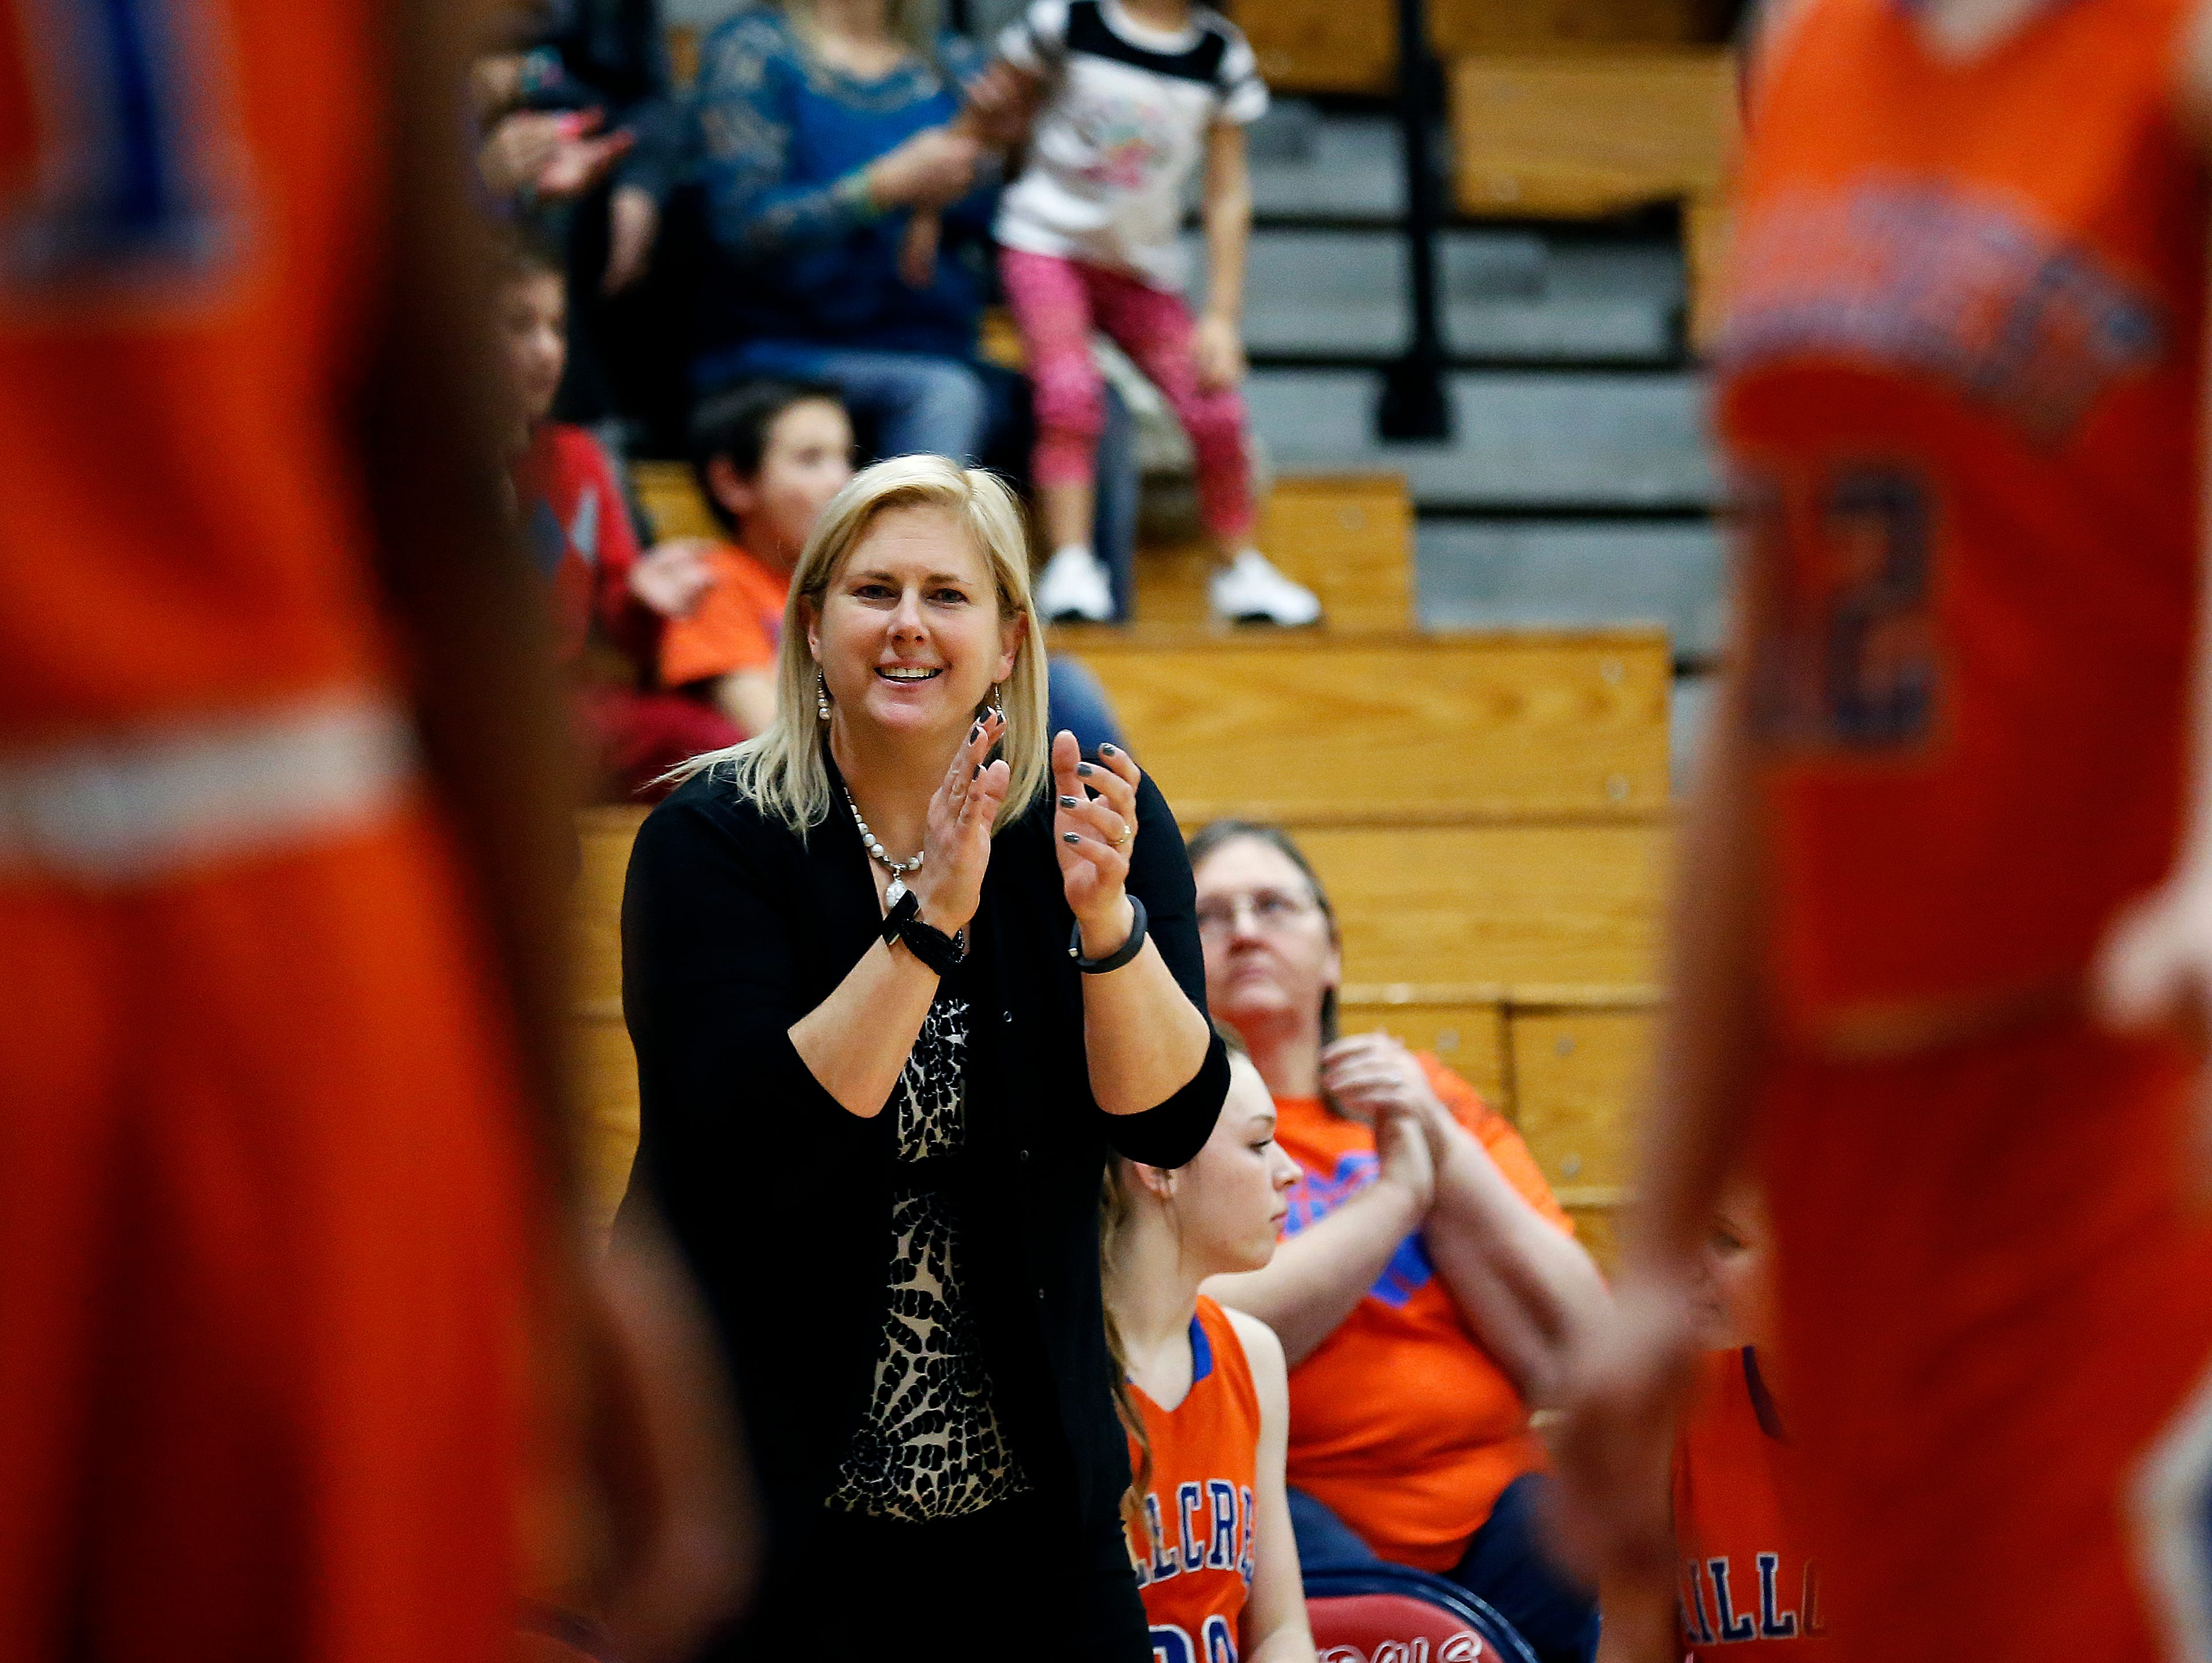 Hillcrest High School head coach Jeni Hopkins reacts during fourth quarter action of the Hornets' game against Glendale High School at Glendale High School in Springfield, Mo. on Jan. 7, 2015. The Hornets won the game 49-39.